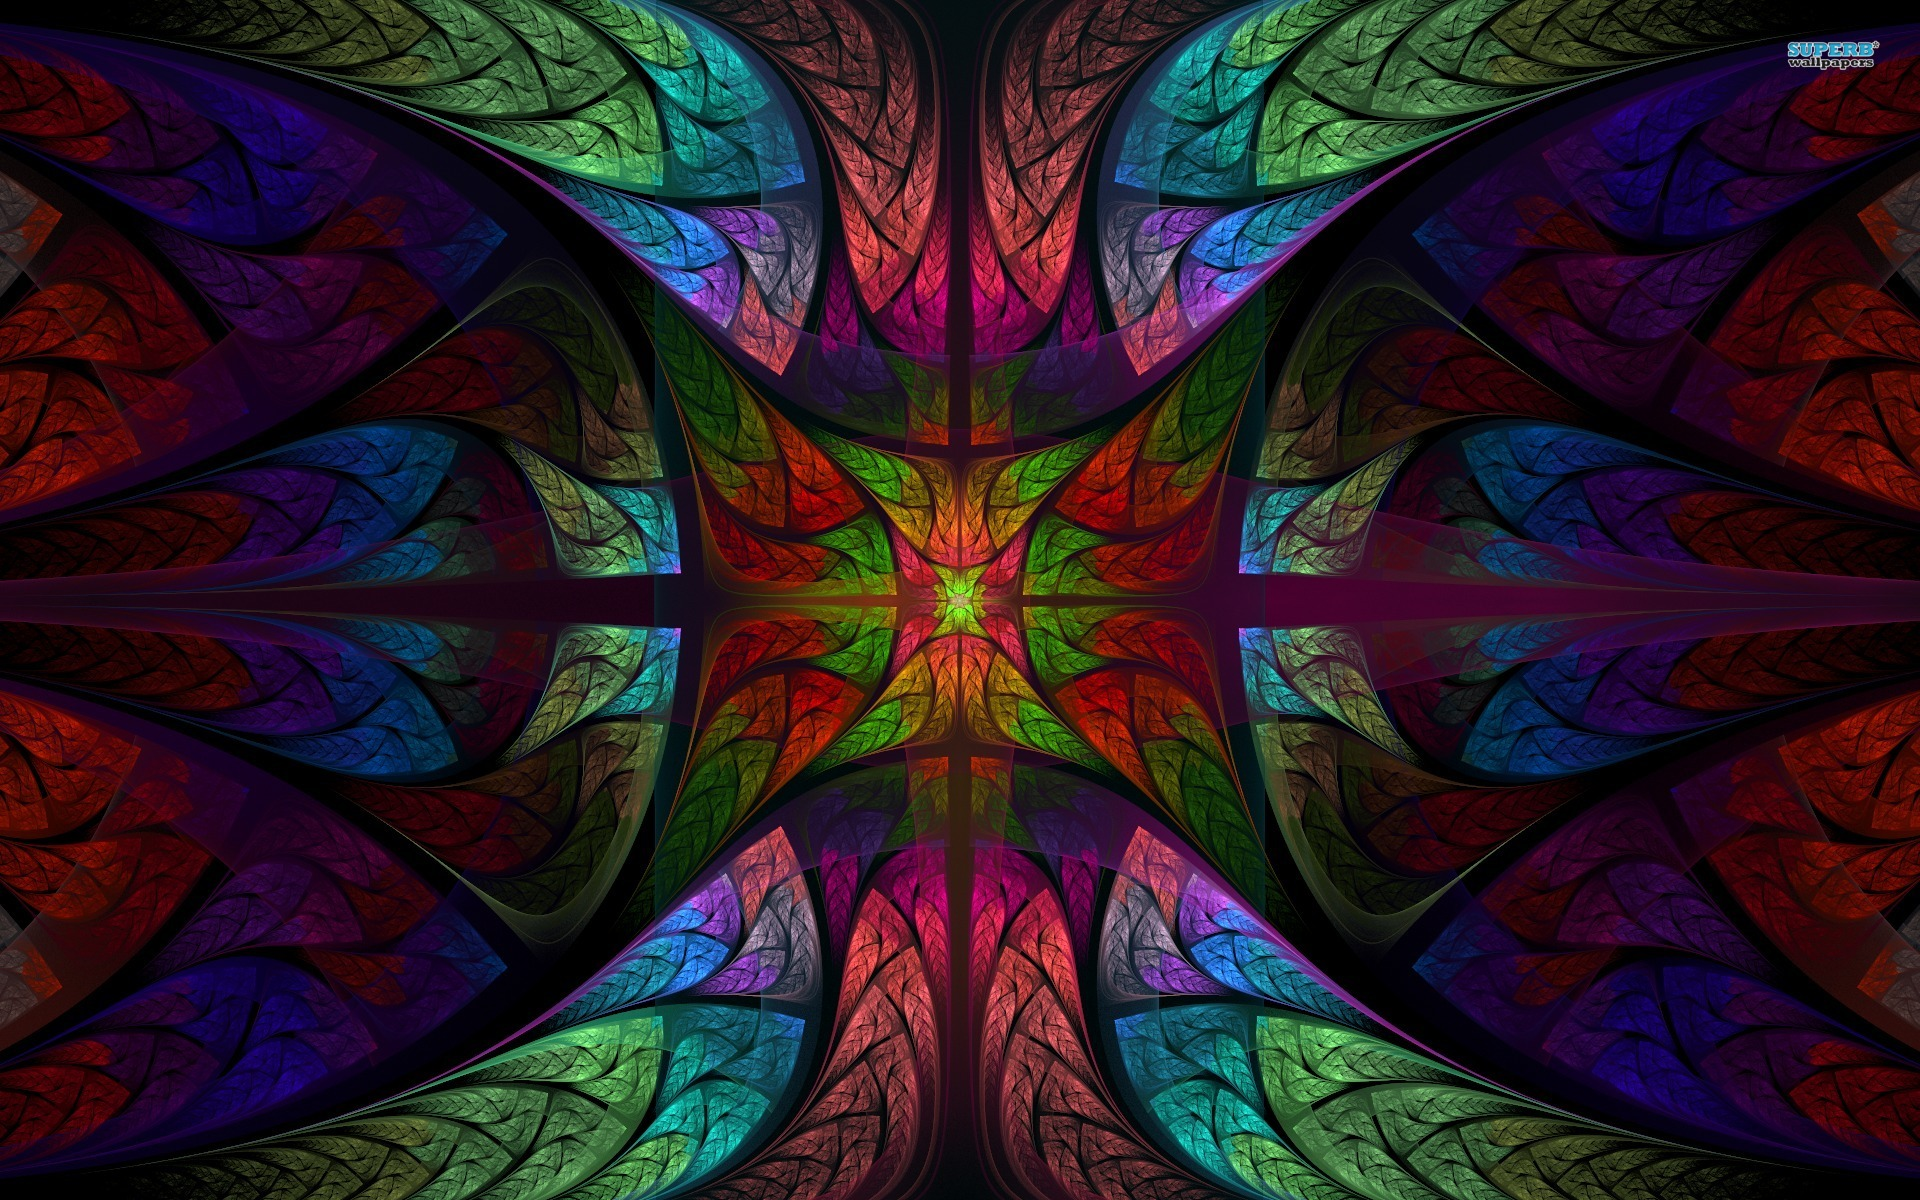 Stained glass wallpaper 1920x1200